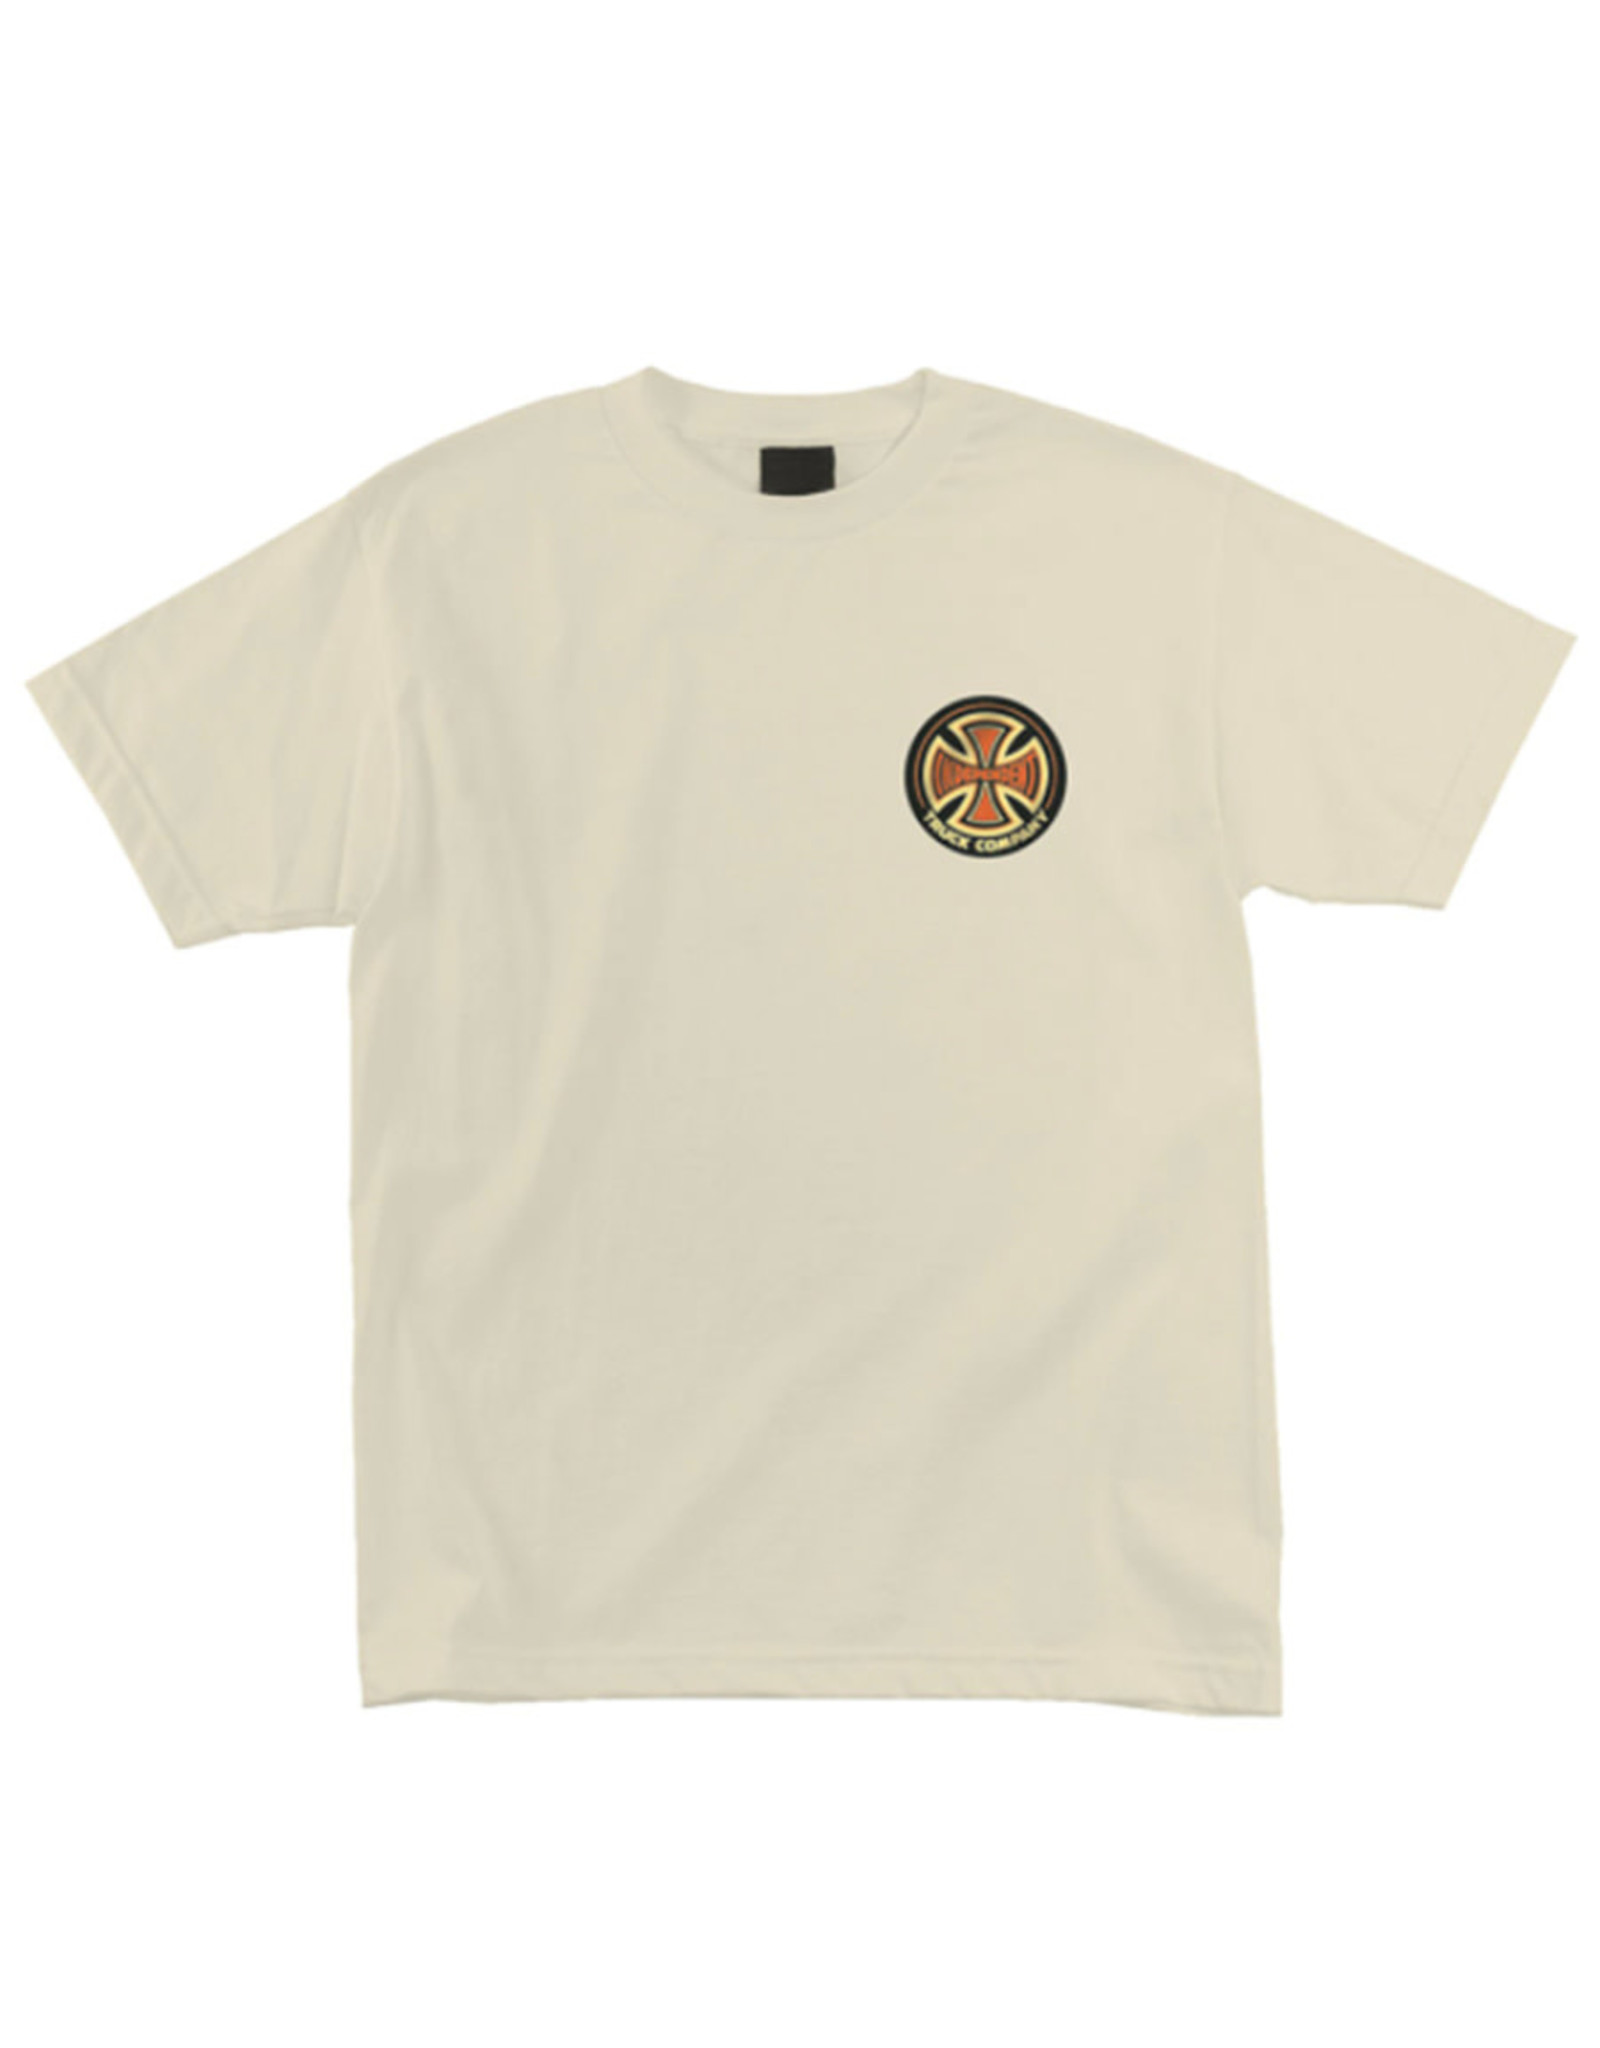 Independent Independent Tee 78 Cross Regular S/S (Cream)